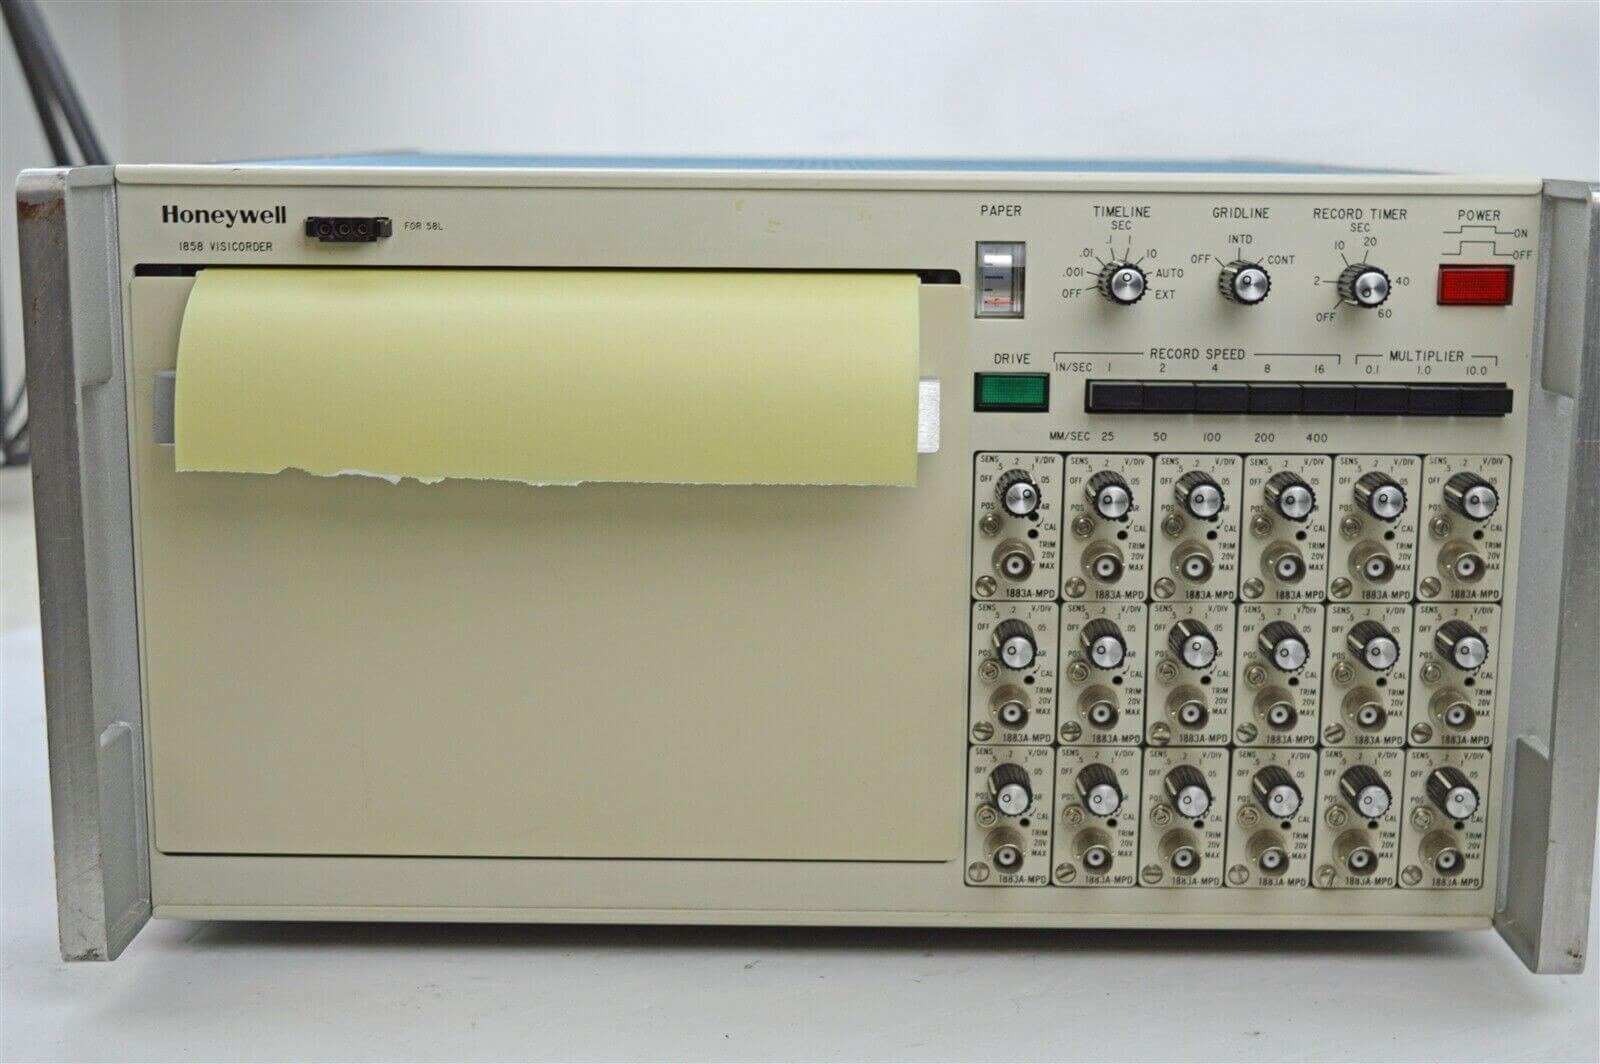 Honeywell 1858 Visicorder light beam oscillograph